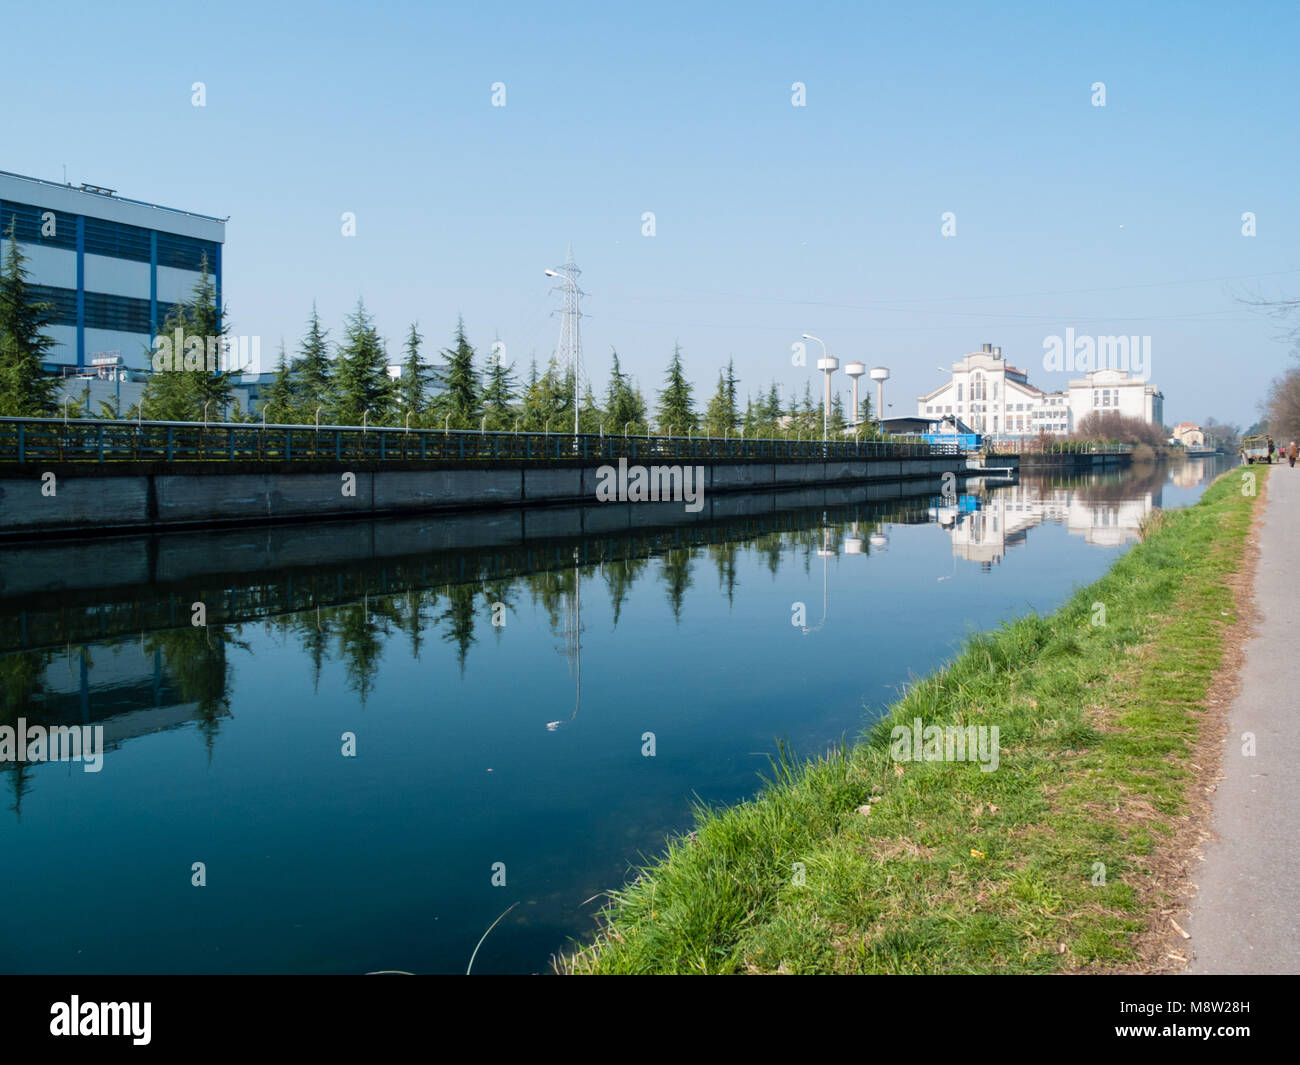 Turbigo-ITALY-03 12 2014, Turbigo thermoelectric power station on the Naviglio Grande in the Lombardy province of - Stock Image